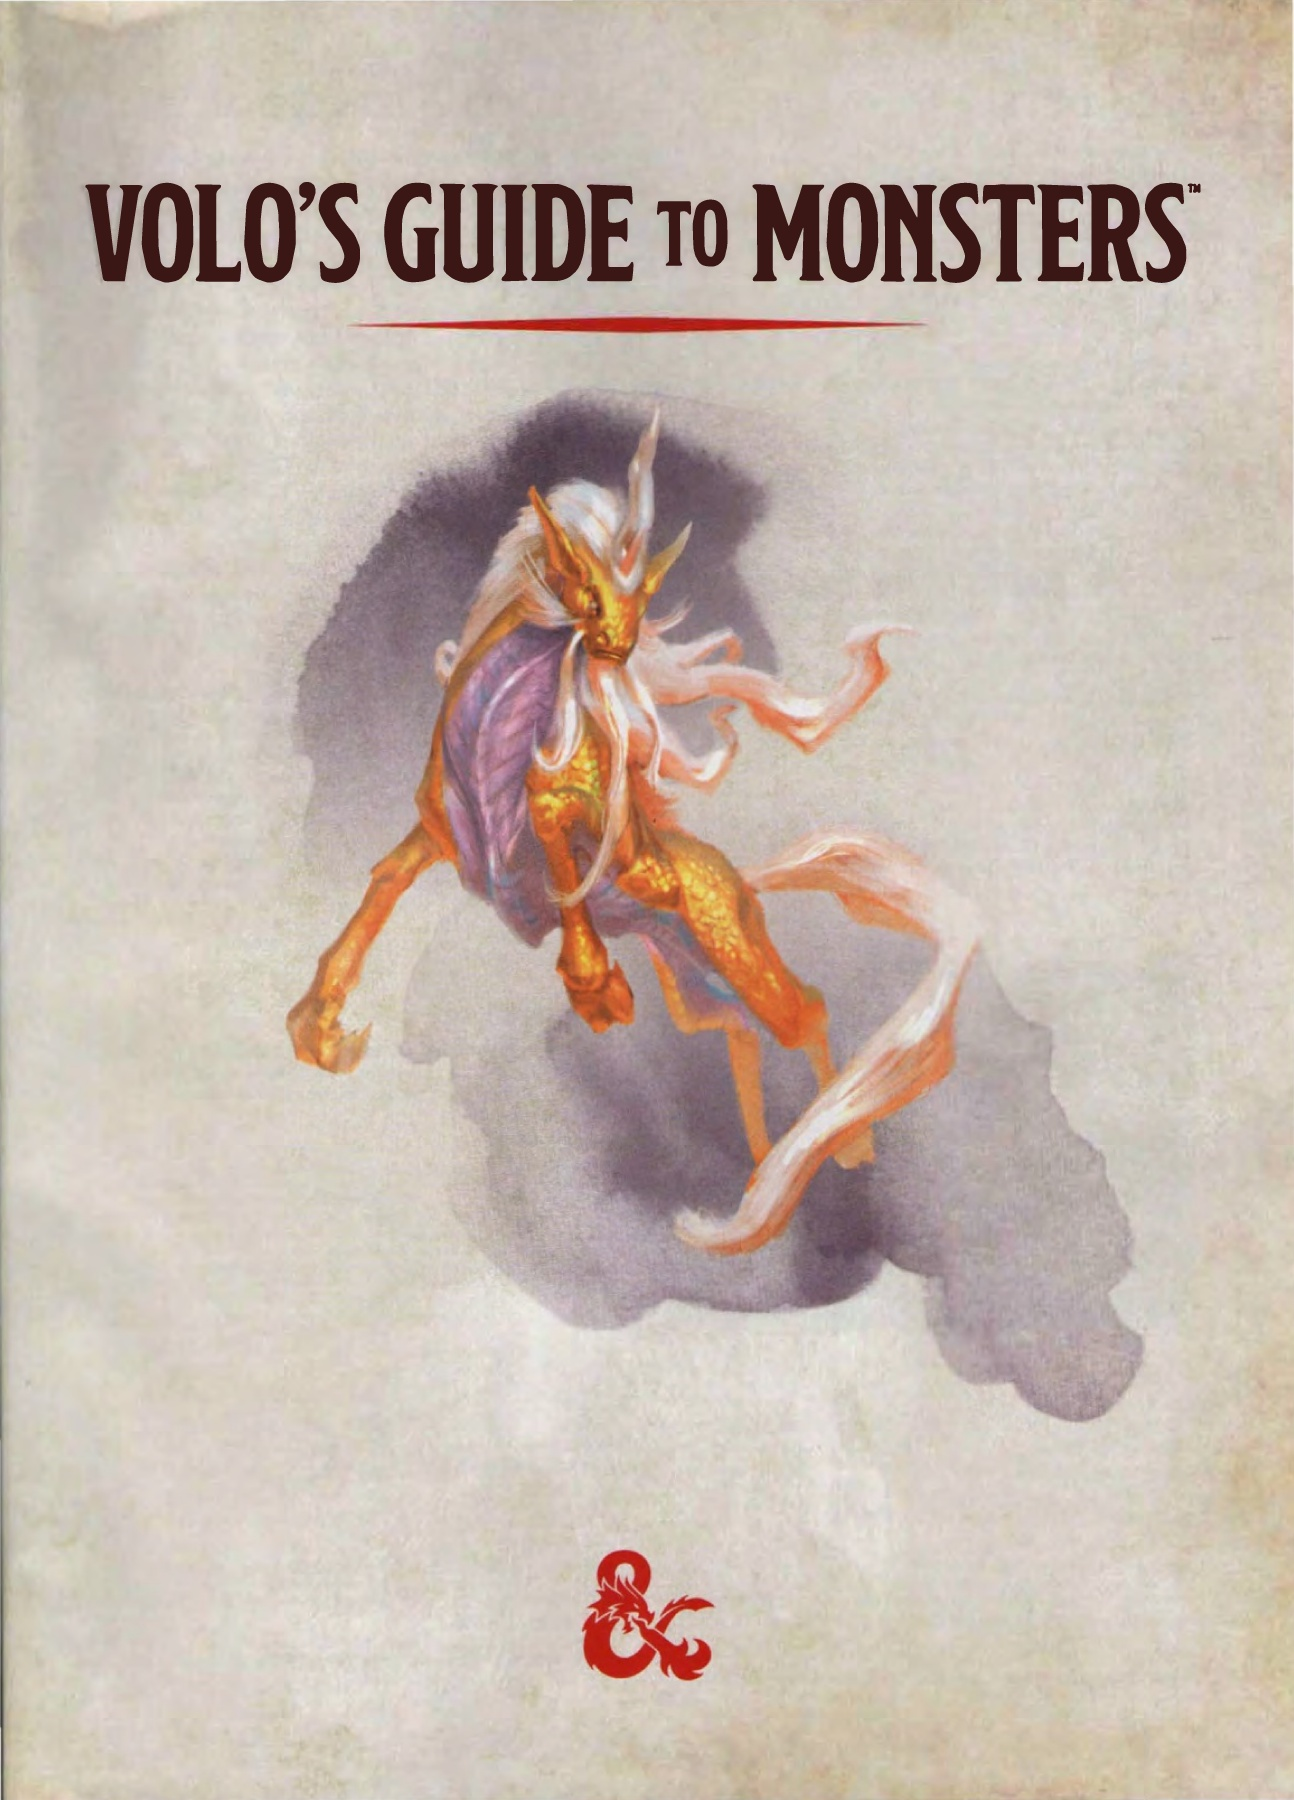 Volo S Guide To Monsters Pages 101 150 Text Version Anyflip Are you asking about the tabaxi trait (it explicitly answers your question), or are you asking a general. anyflip